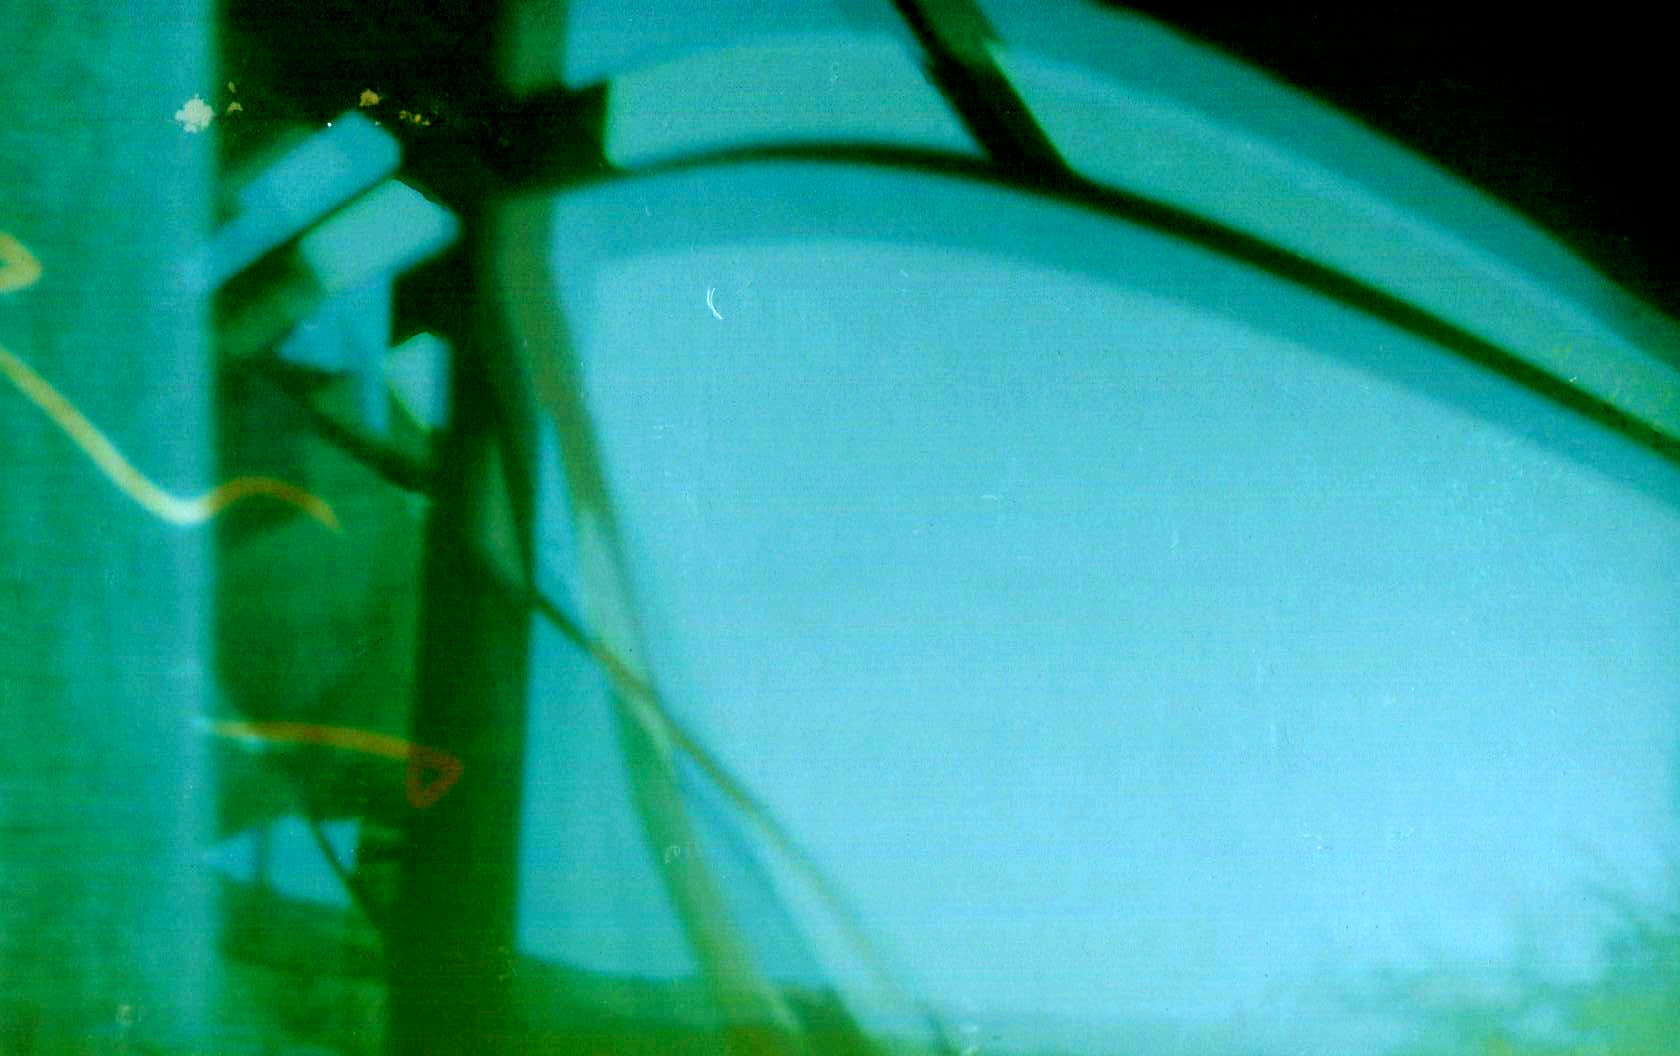 solargraphy2.jpg